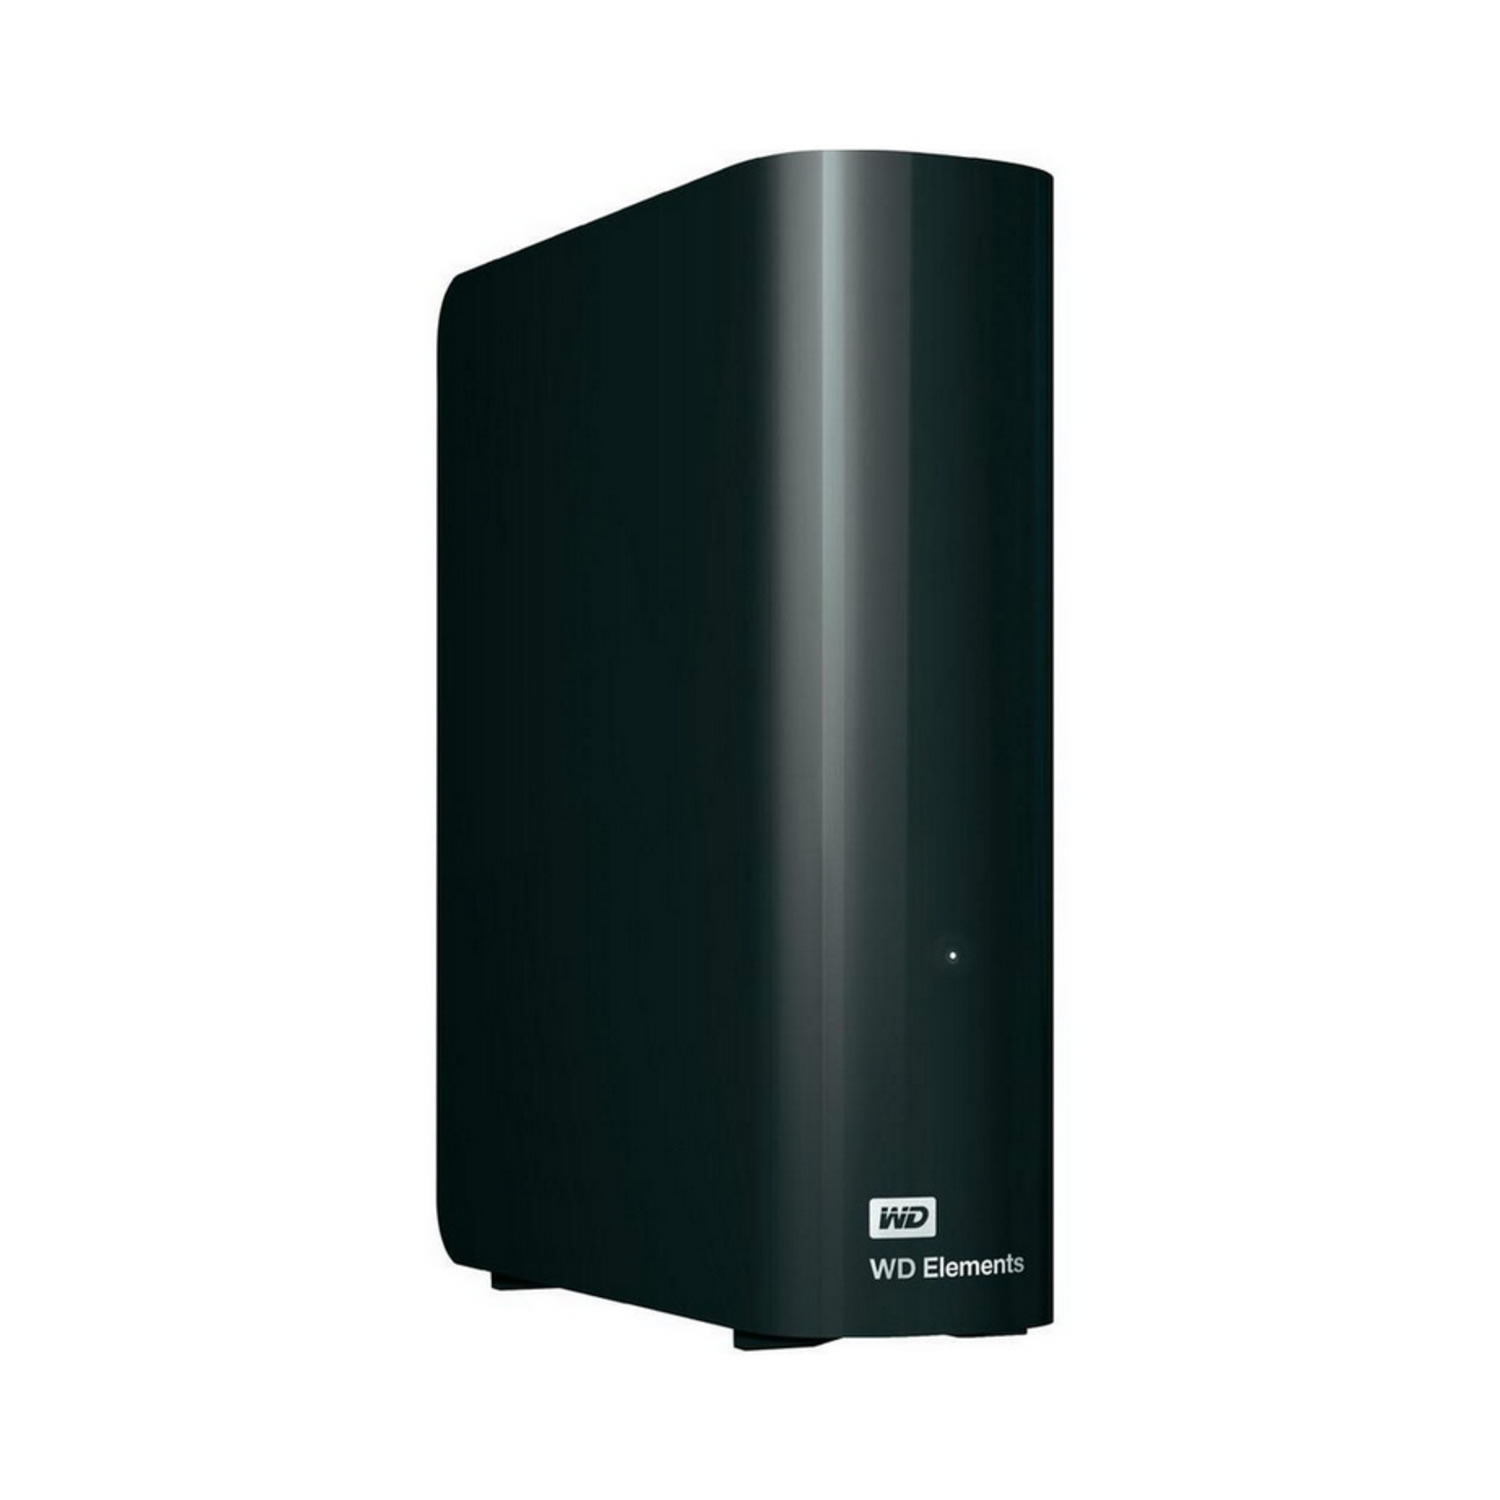 WD Elements 4TB USB 3.0